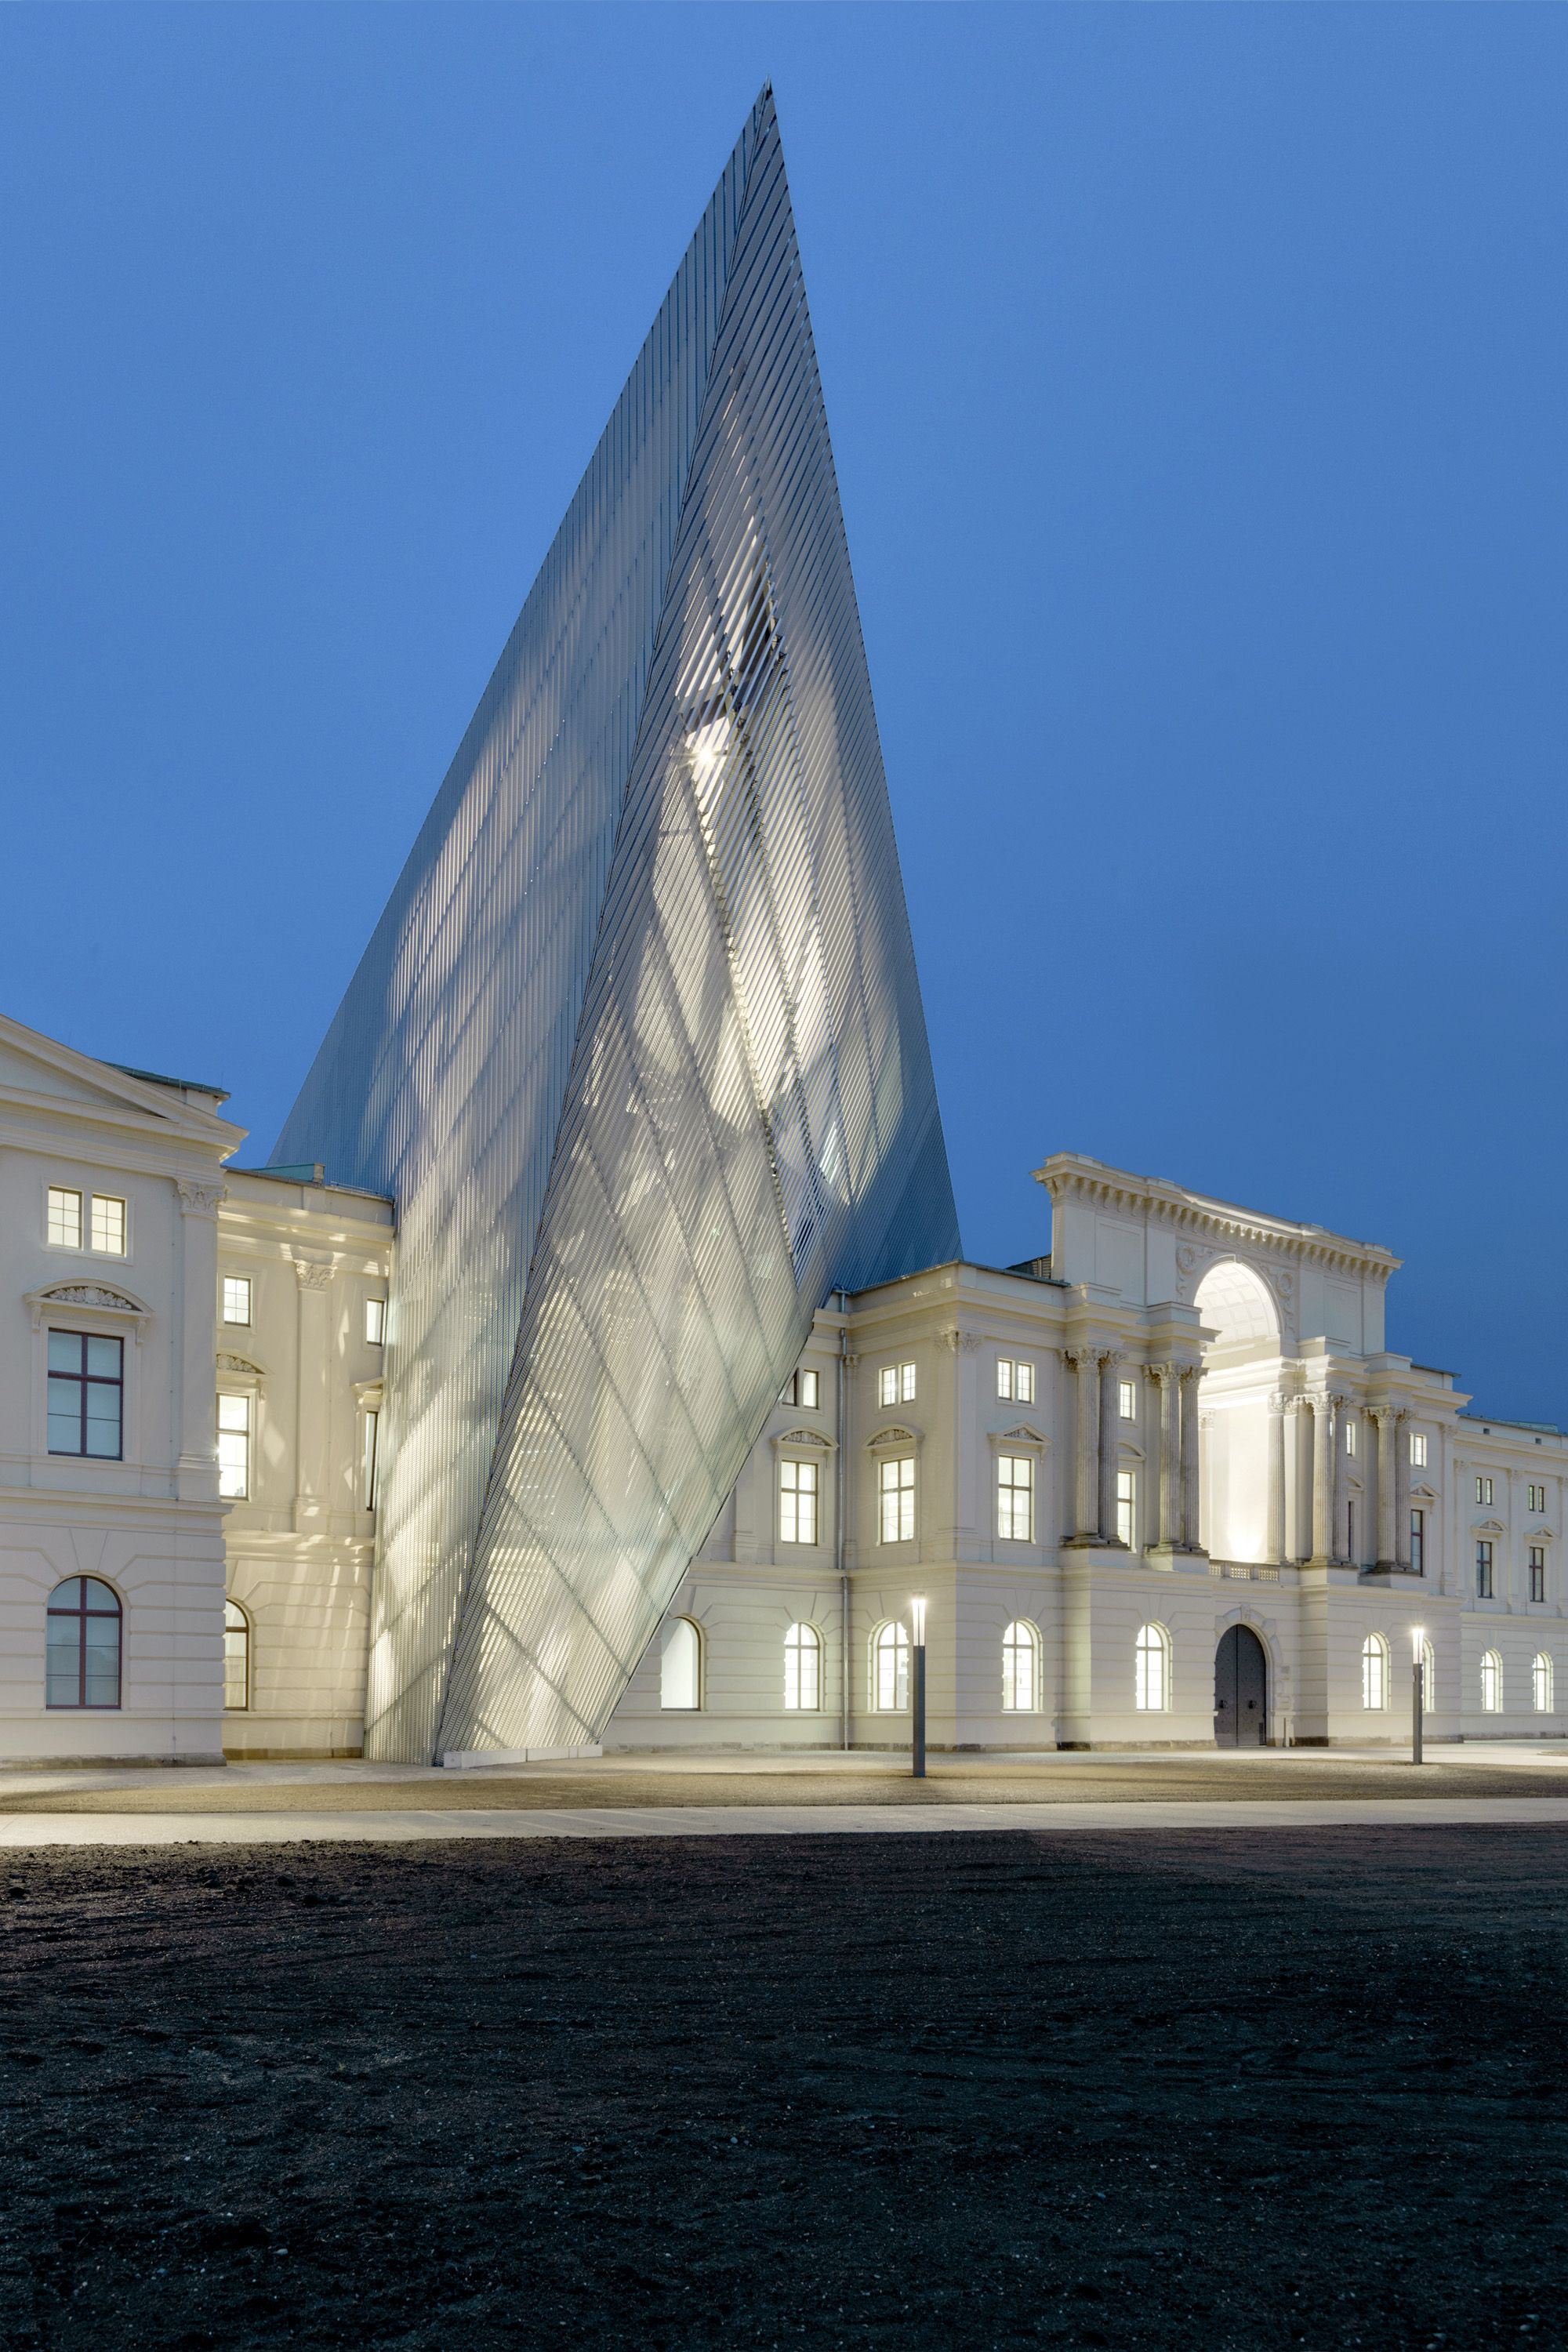 Architecture: The largest museum in Germany, ampliation by Daniel Libeskind